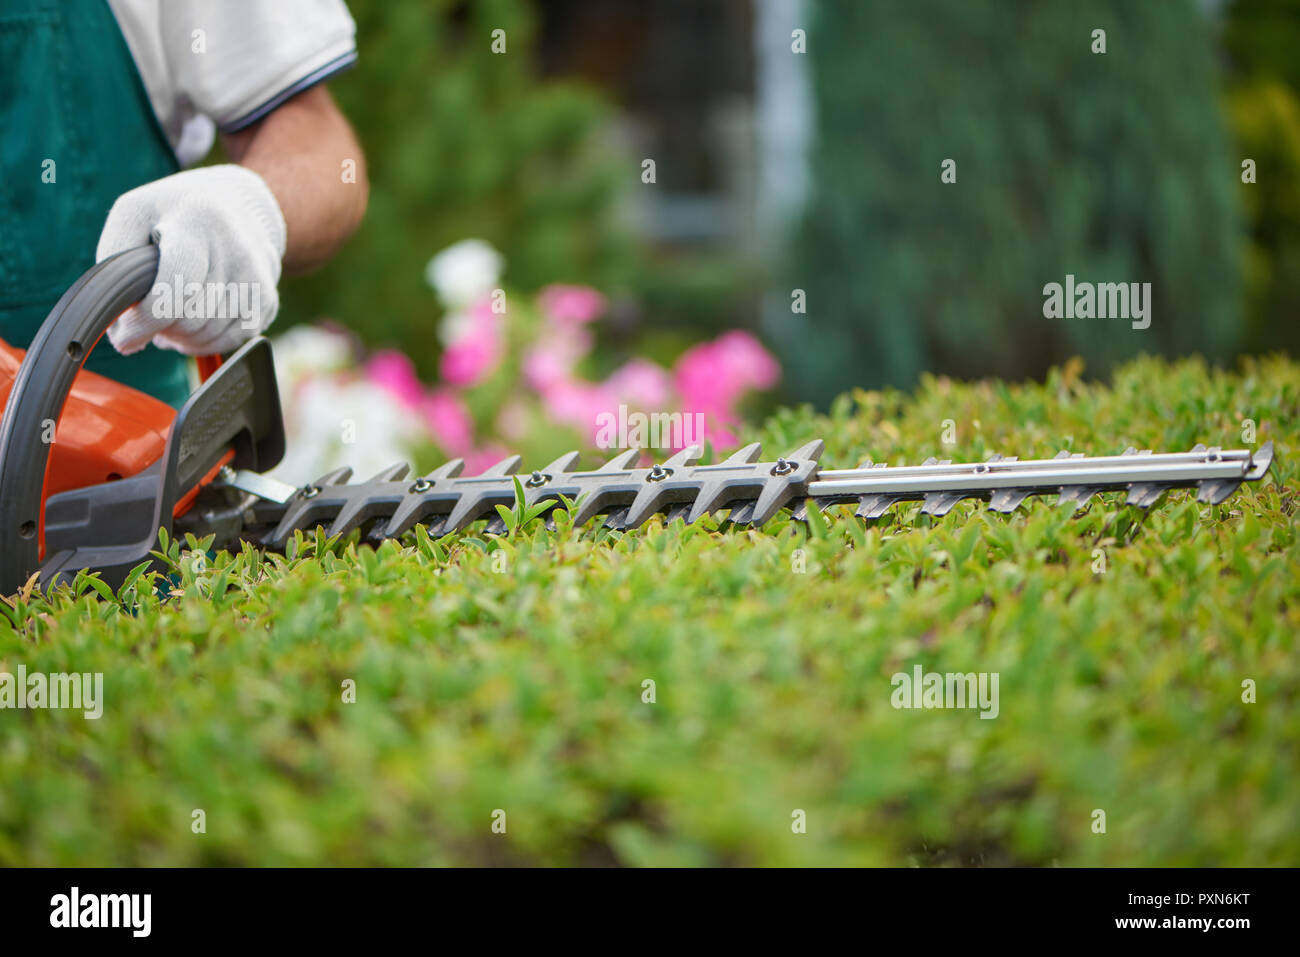 Professional male gardener, wearing in special overalls with protective glove working with professional garden equipment in backyard. Hedge trimmer cutting bushes to ideal fence. Gardening concept. - Stock Image